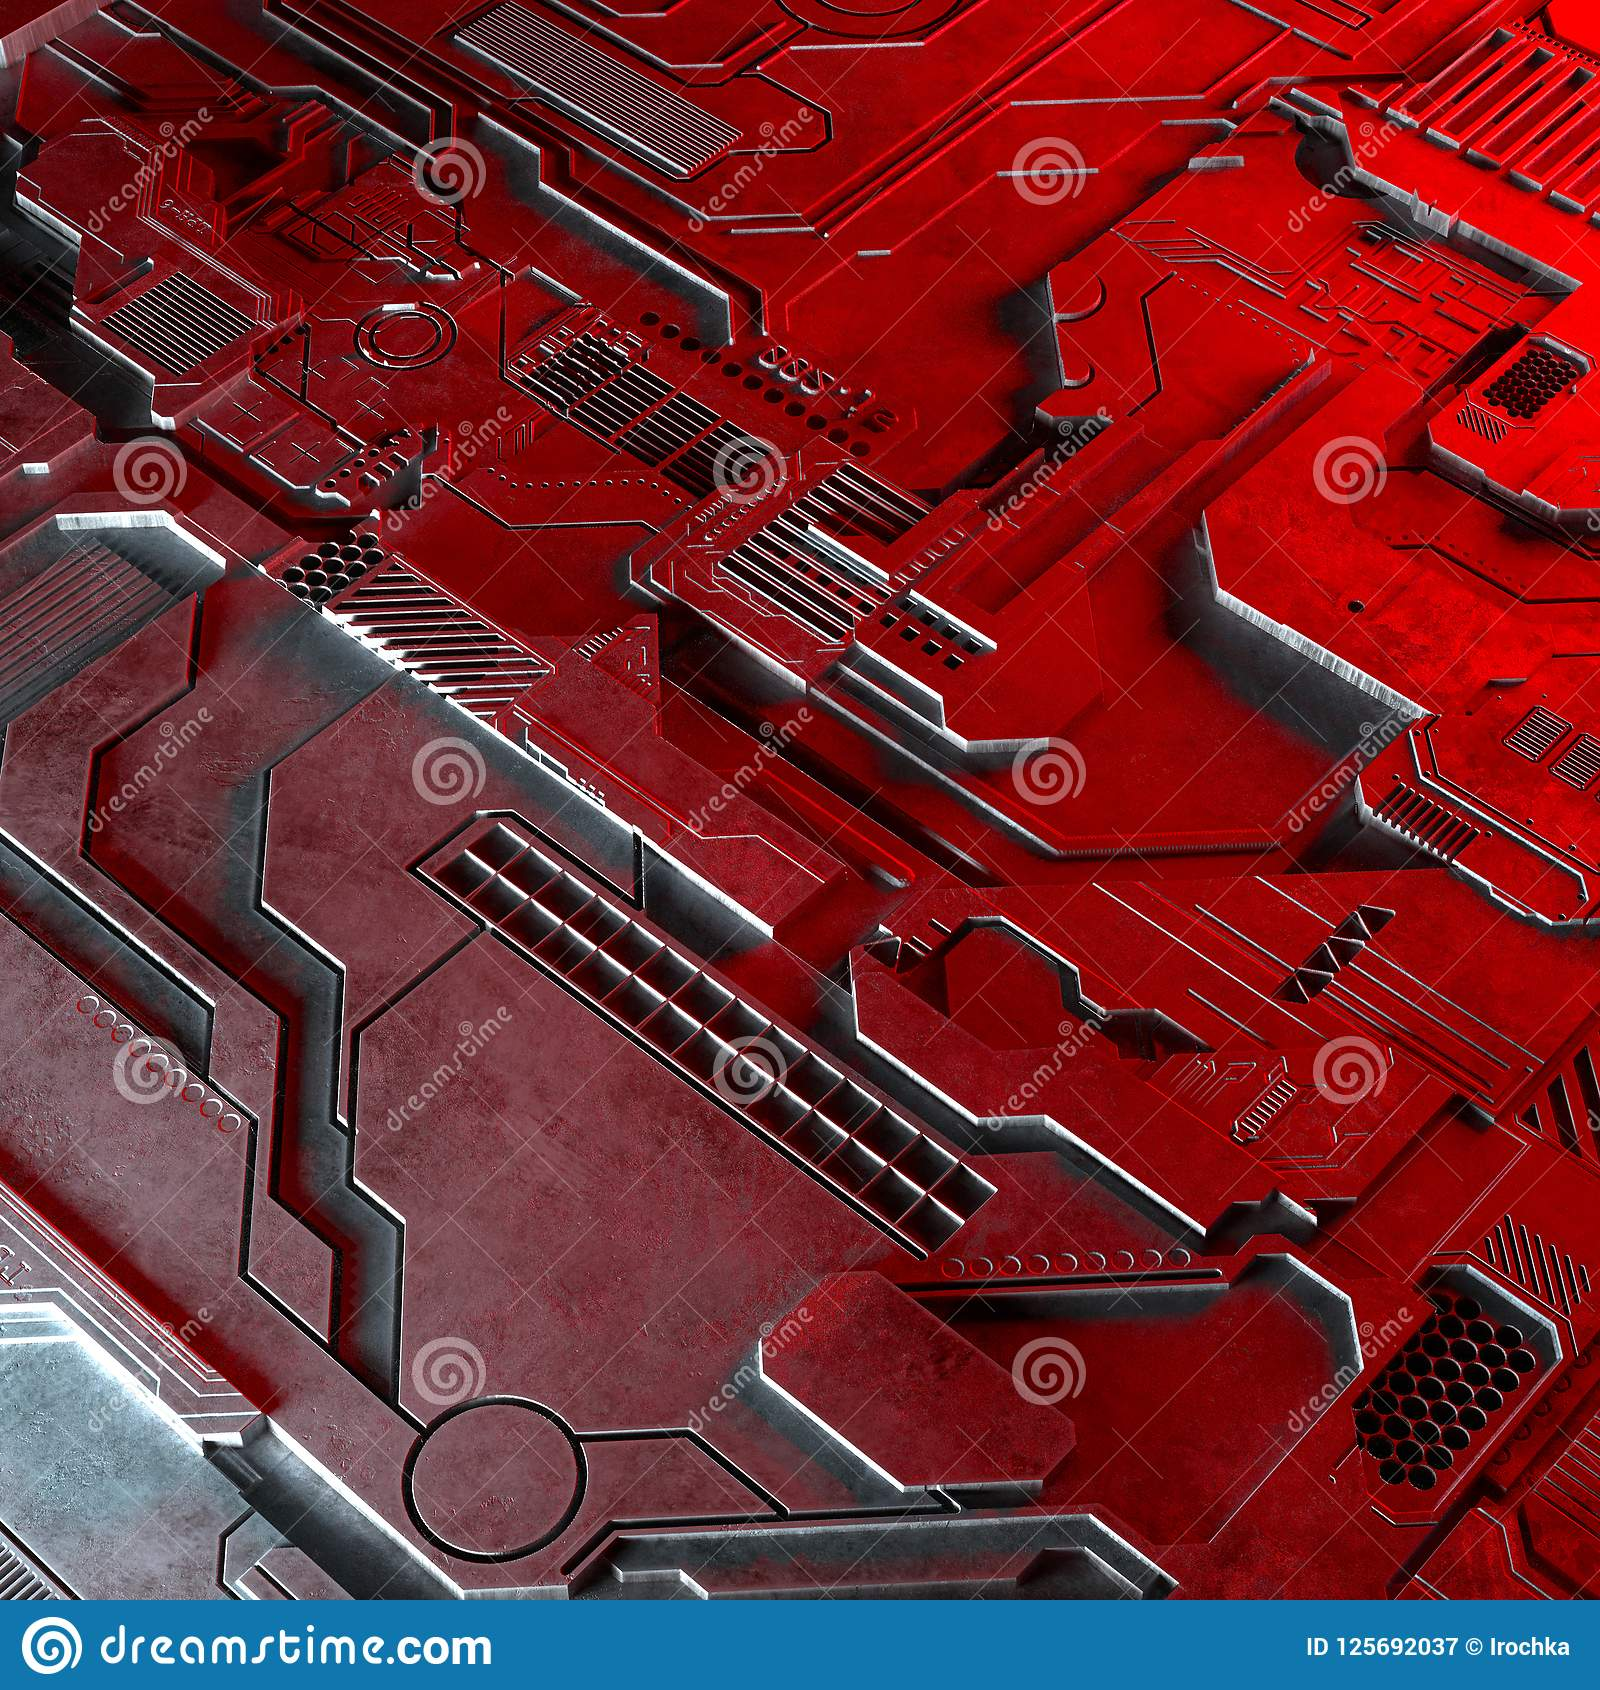 Download Abstract Technological Background Made Of Different Element Printed Circuit Board And Flares. Stock Illustration - Illustration of communication, chip: 125692037